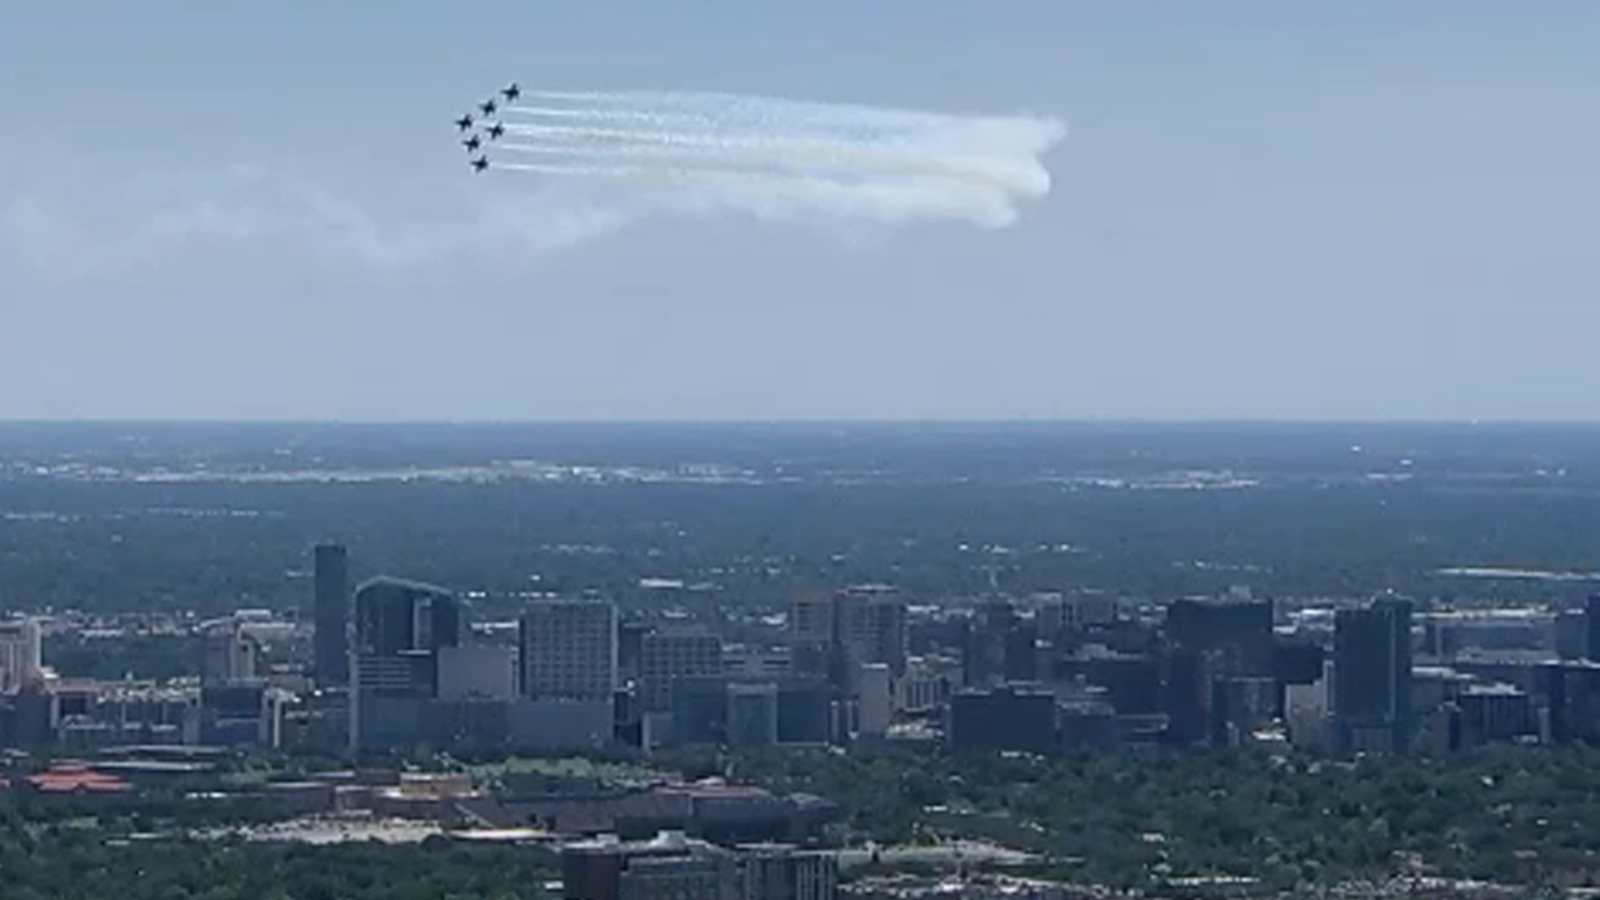 Blue Skies Of Texas >> Blue Angels fly over Houston for COVID-19 frontline workers - ABC13 Houston